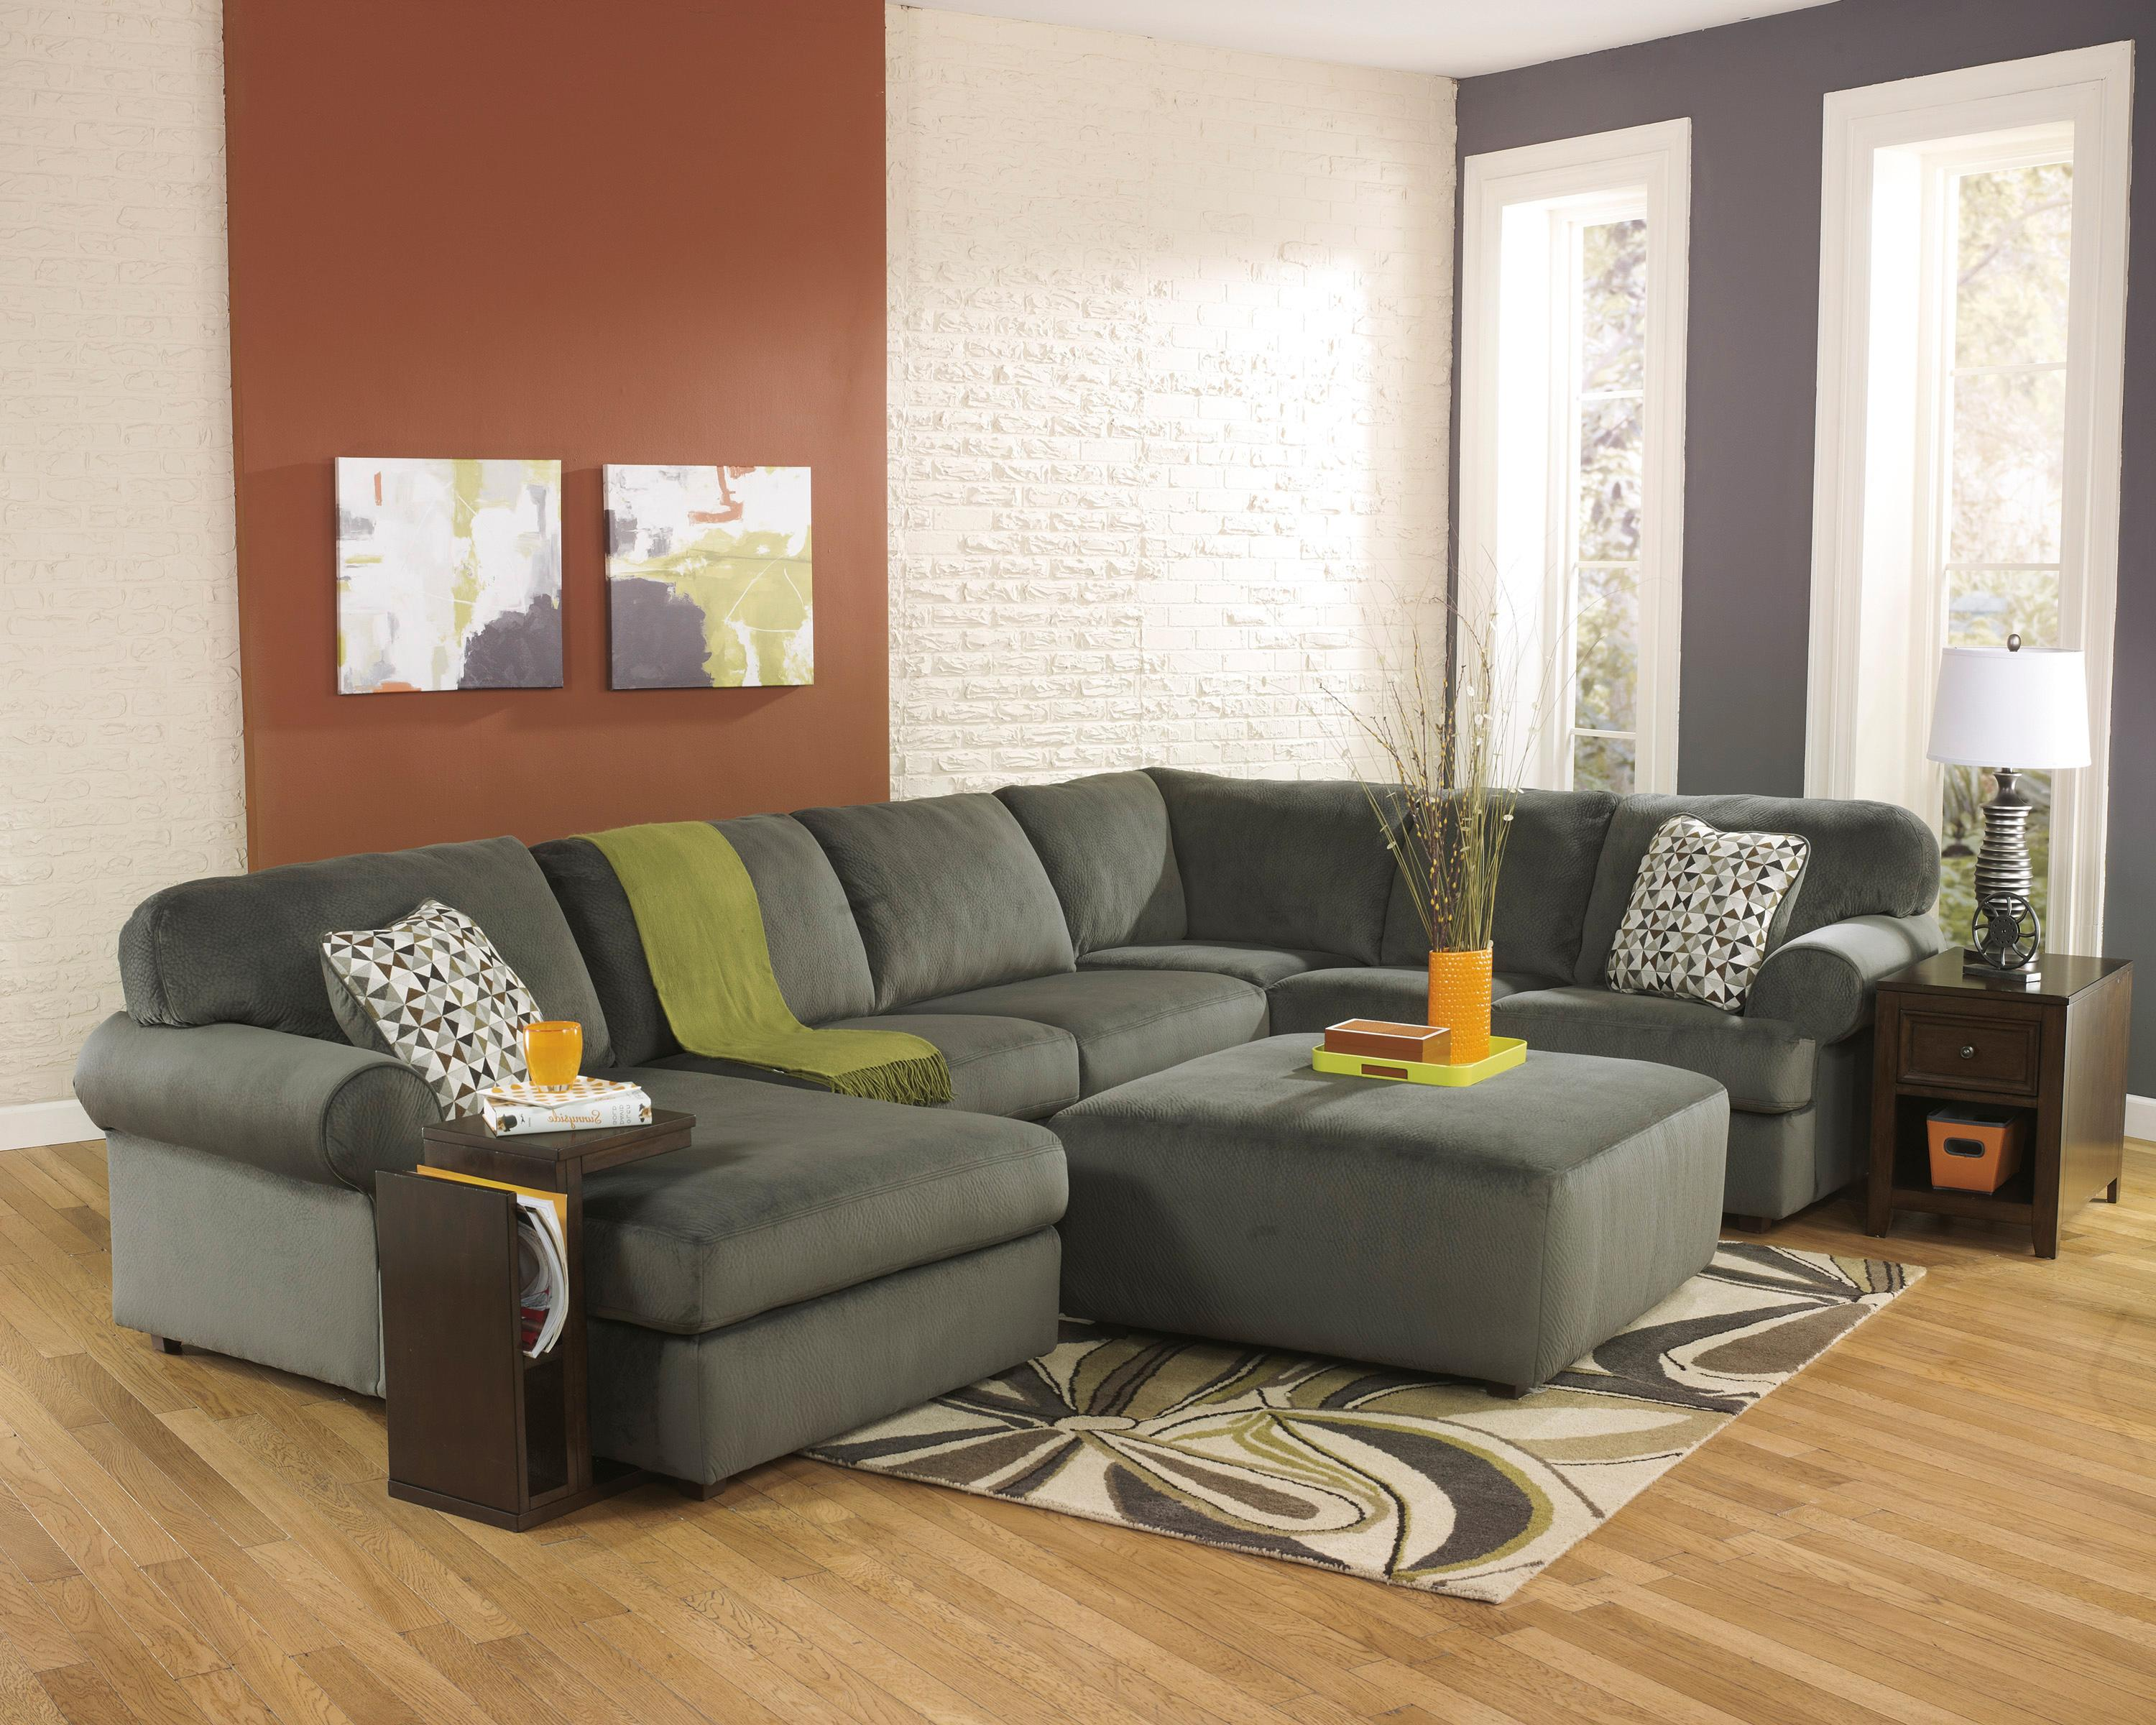 Signature Design by Ashley Jessa Place - Pewter Stationary Living Room Group - Item Number: 39803 Living Room Group 2